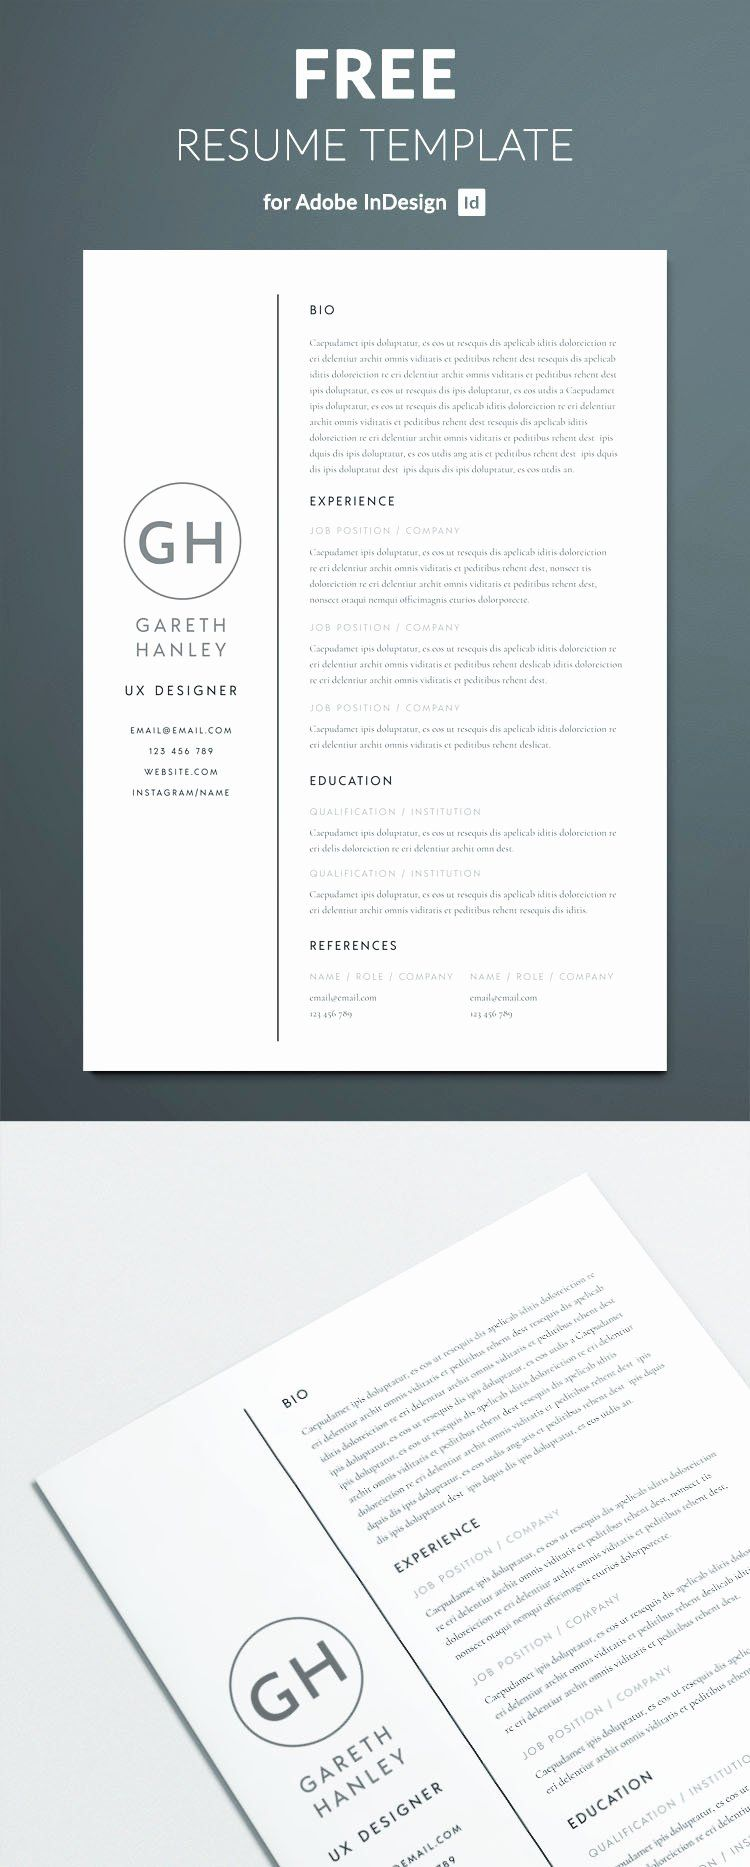 25 Free Basic Resume Templates Download in 2020 Indesign